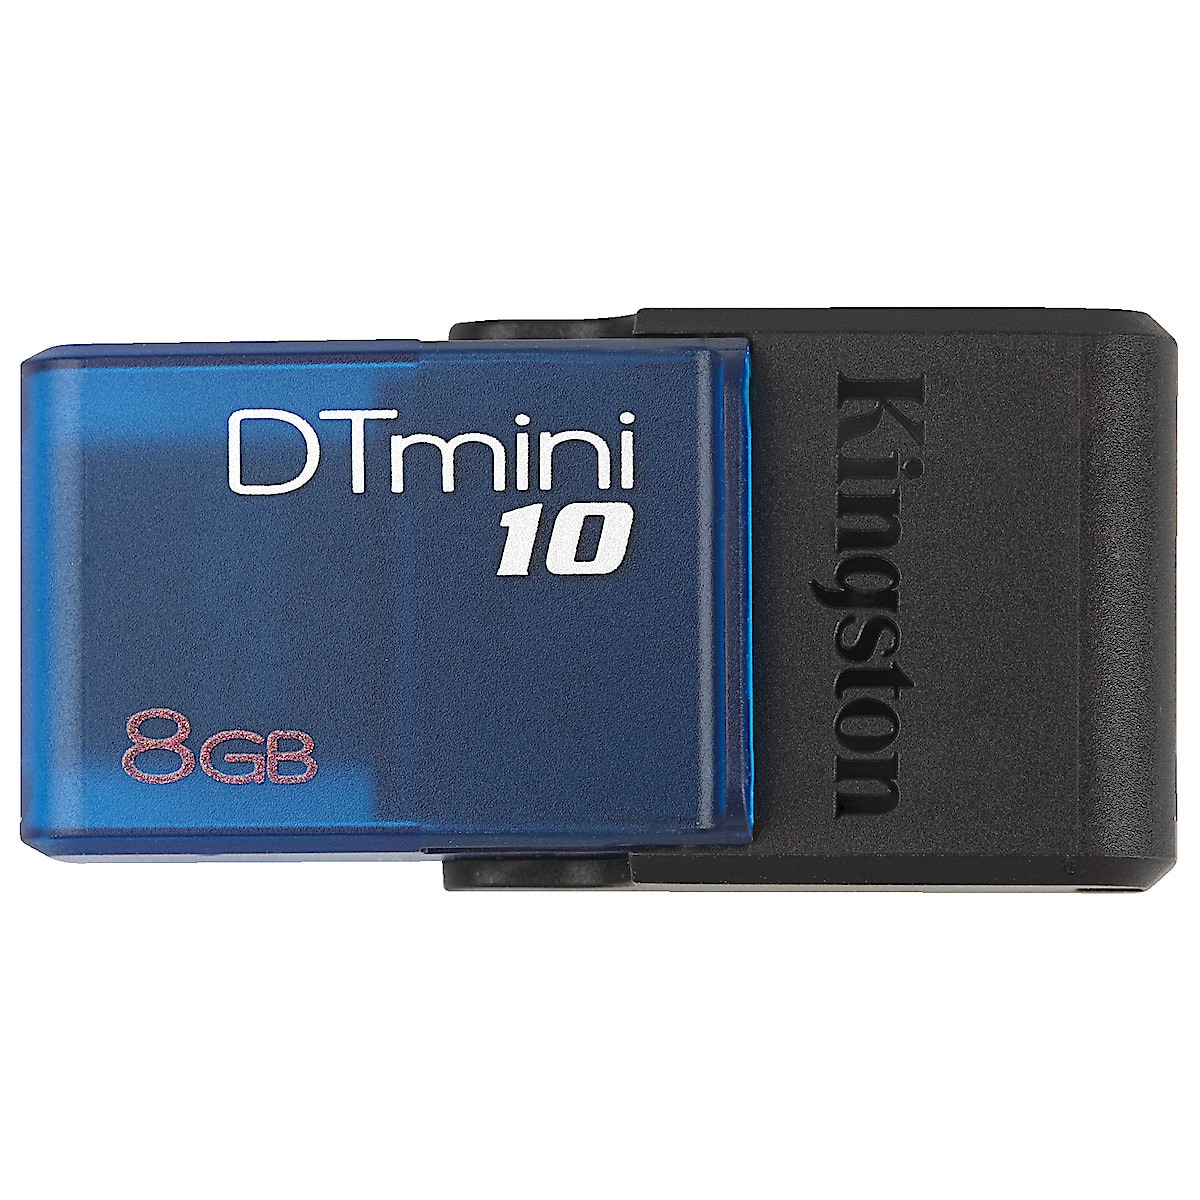 USB 2.0-minne Kingston mini10